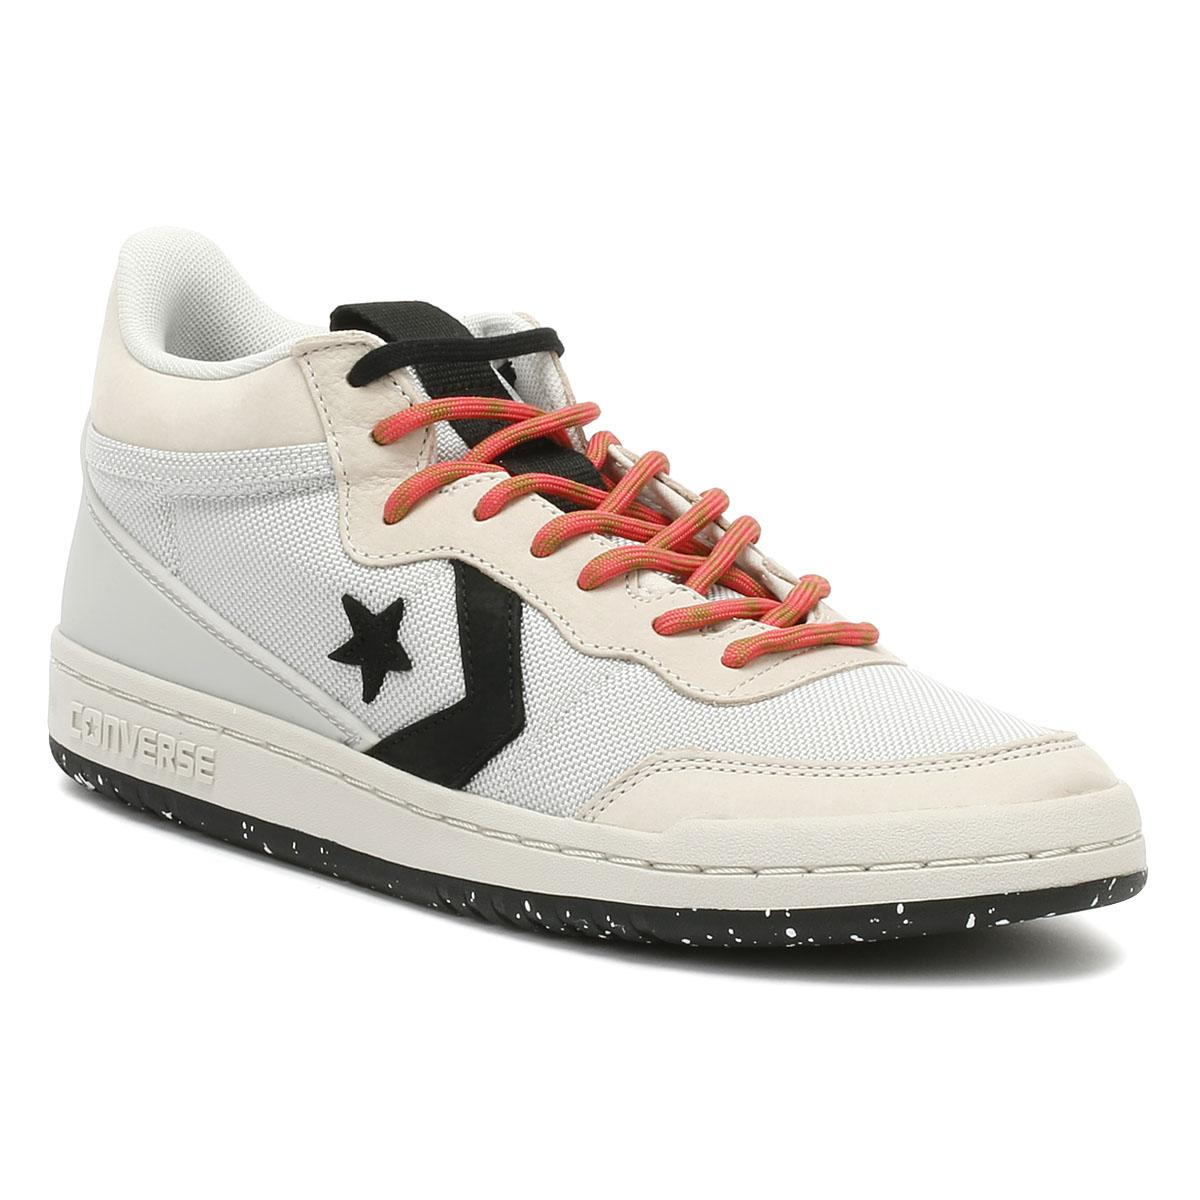 40288eed8bcfeb Converse Fastbreak Mens Pale Putty Mid Trainers in Gray for Men - Lyst